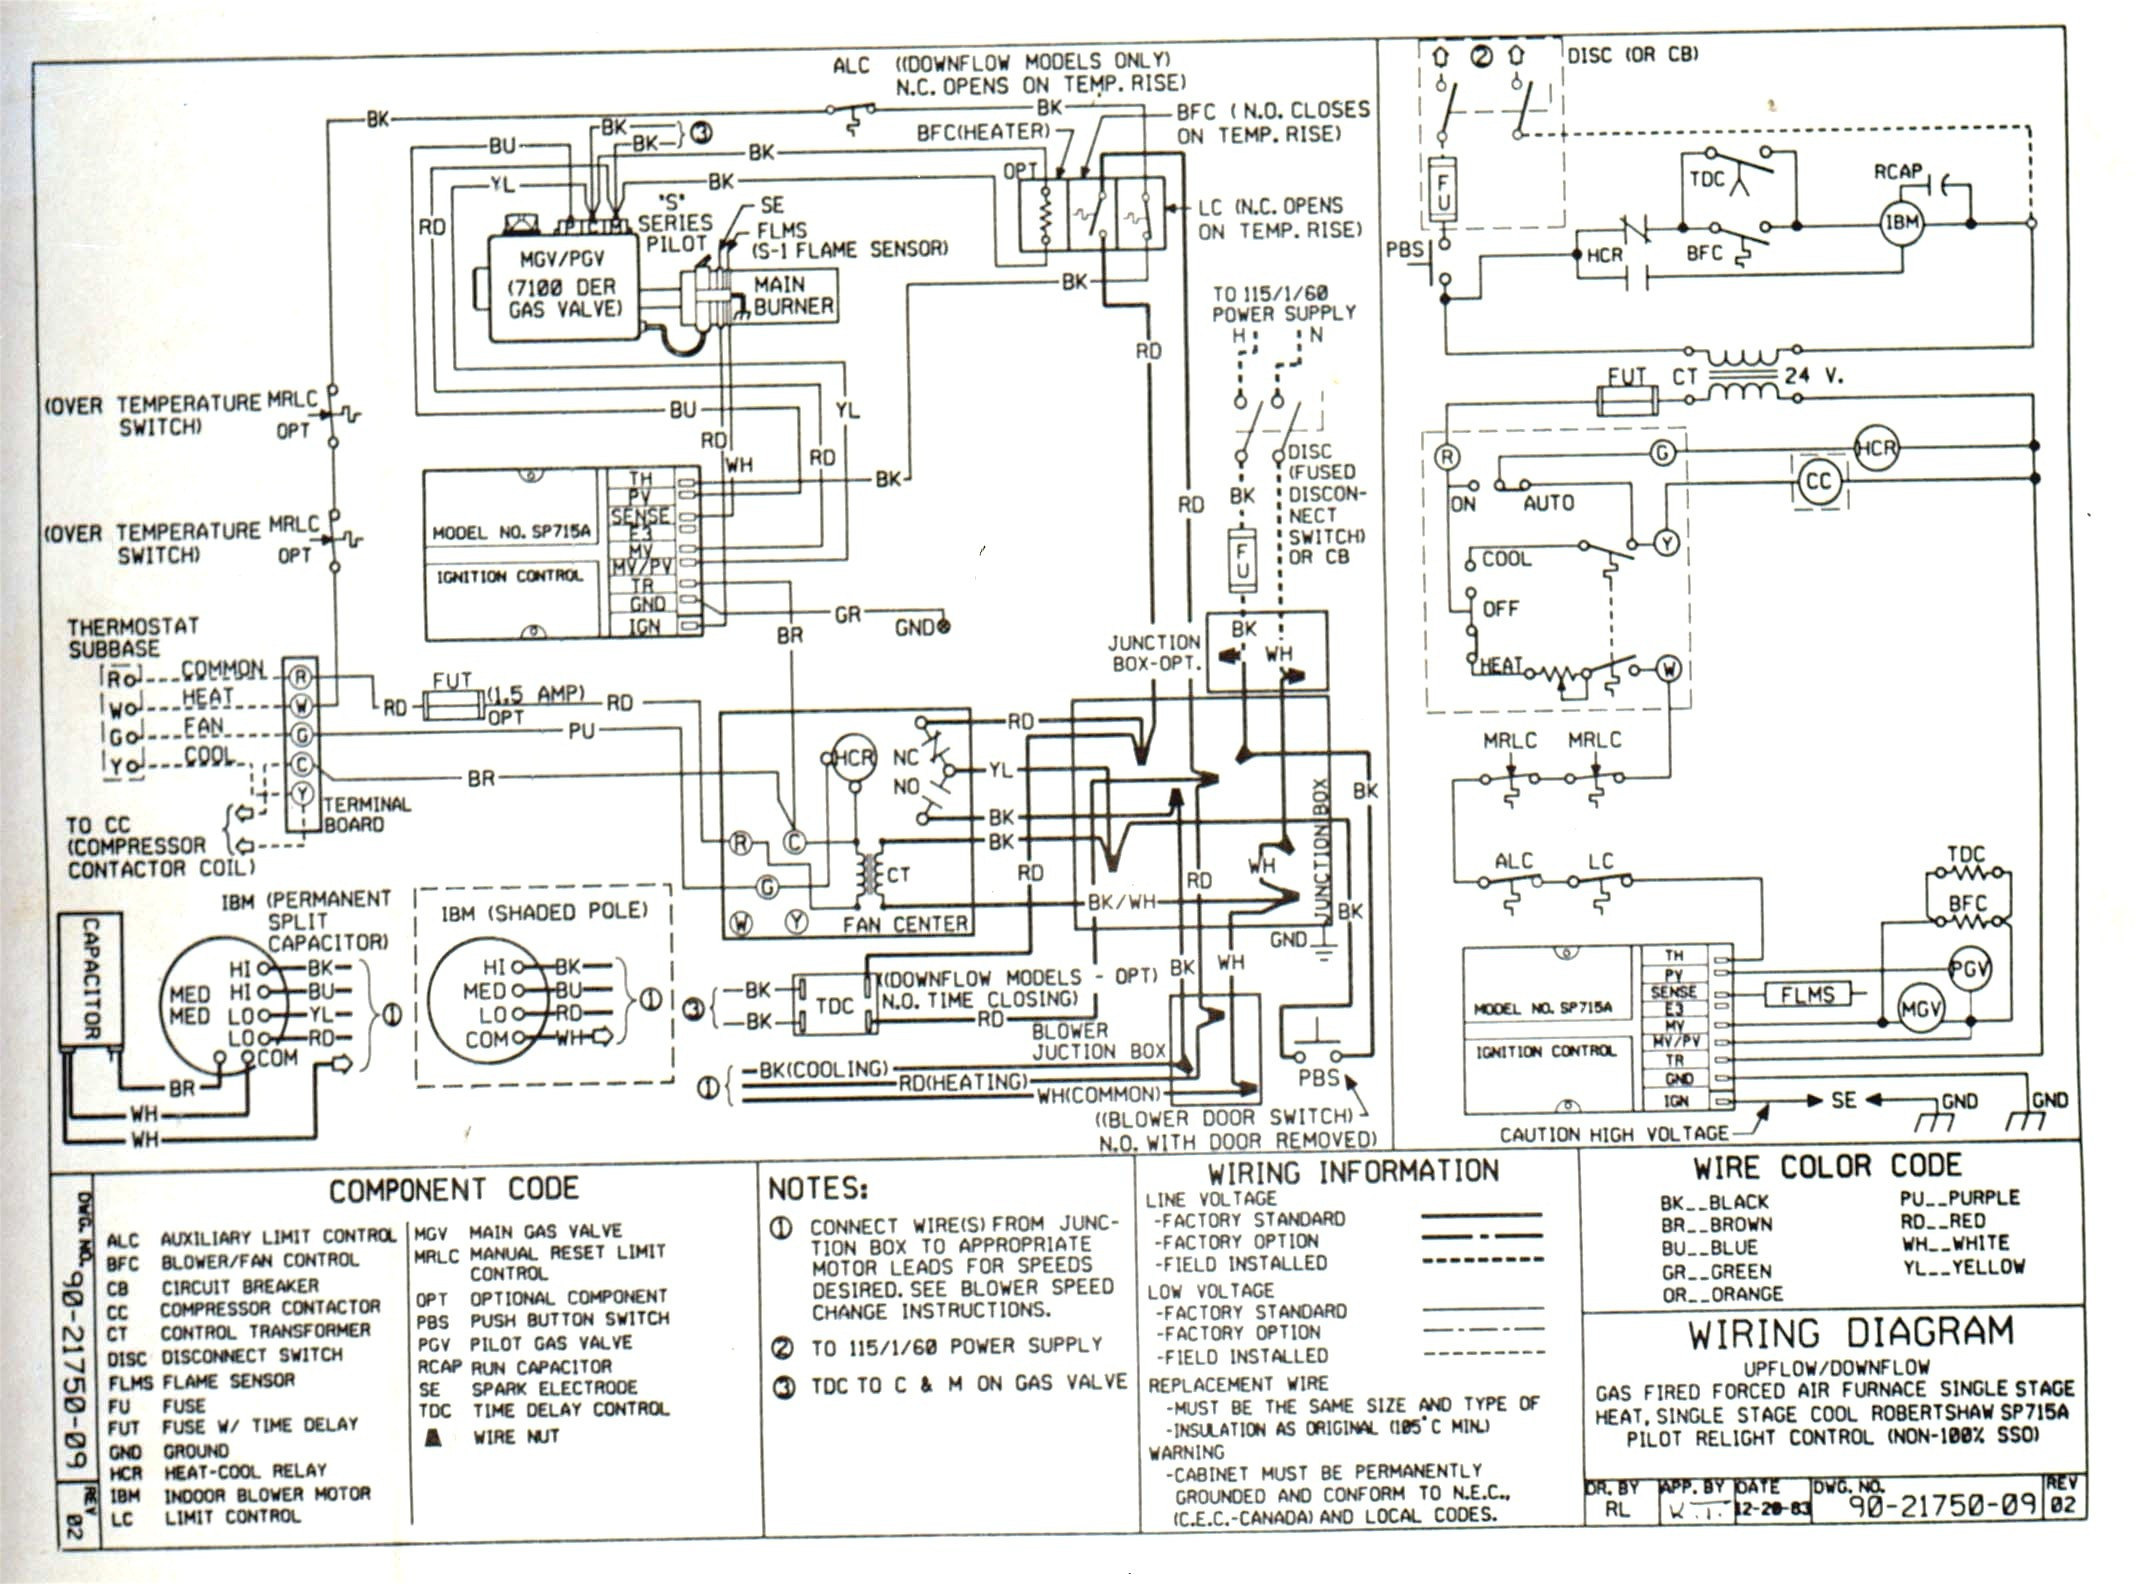 Heat York Diagram N Wiring Pump Ahc1606A - Wiring Diagram Description - Wiring Diagram For York Heat Pump To Nest Thermostat